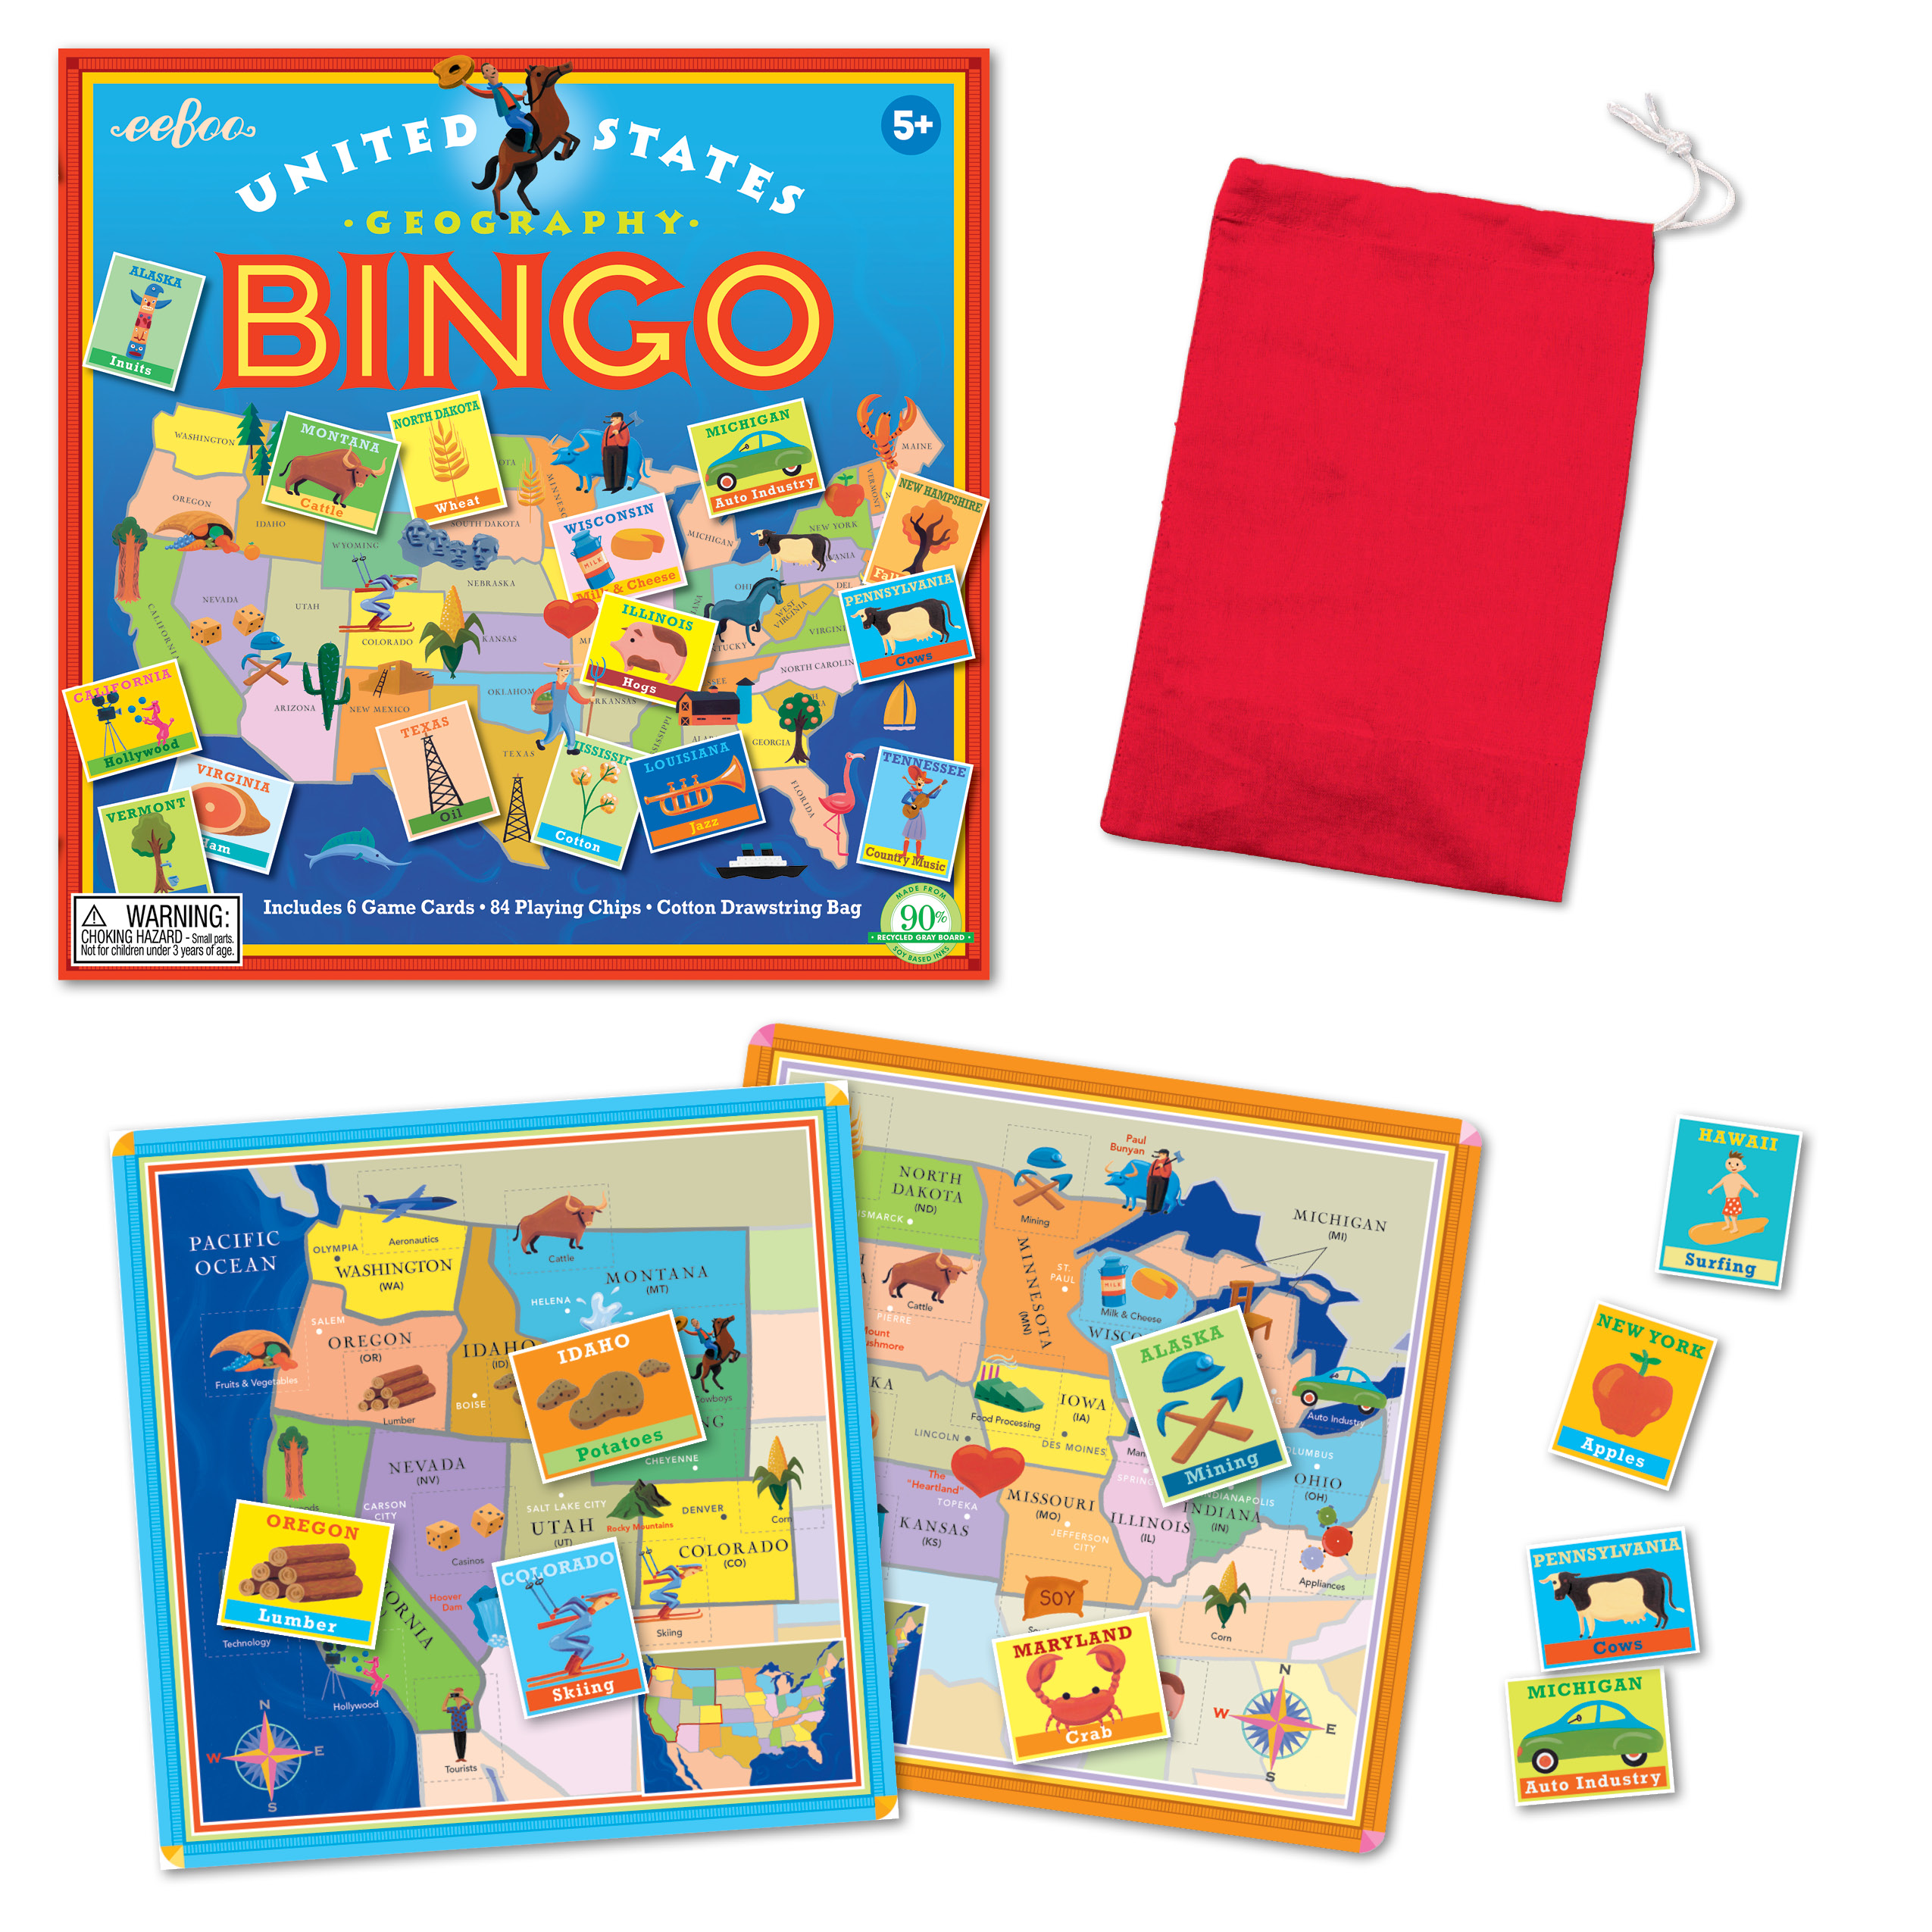 eeBoo Studio Blog Archive eeBoo s USA Bingo Best Educational